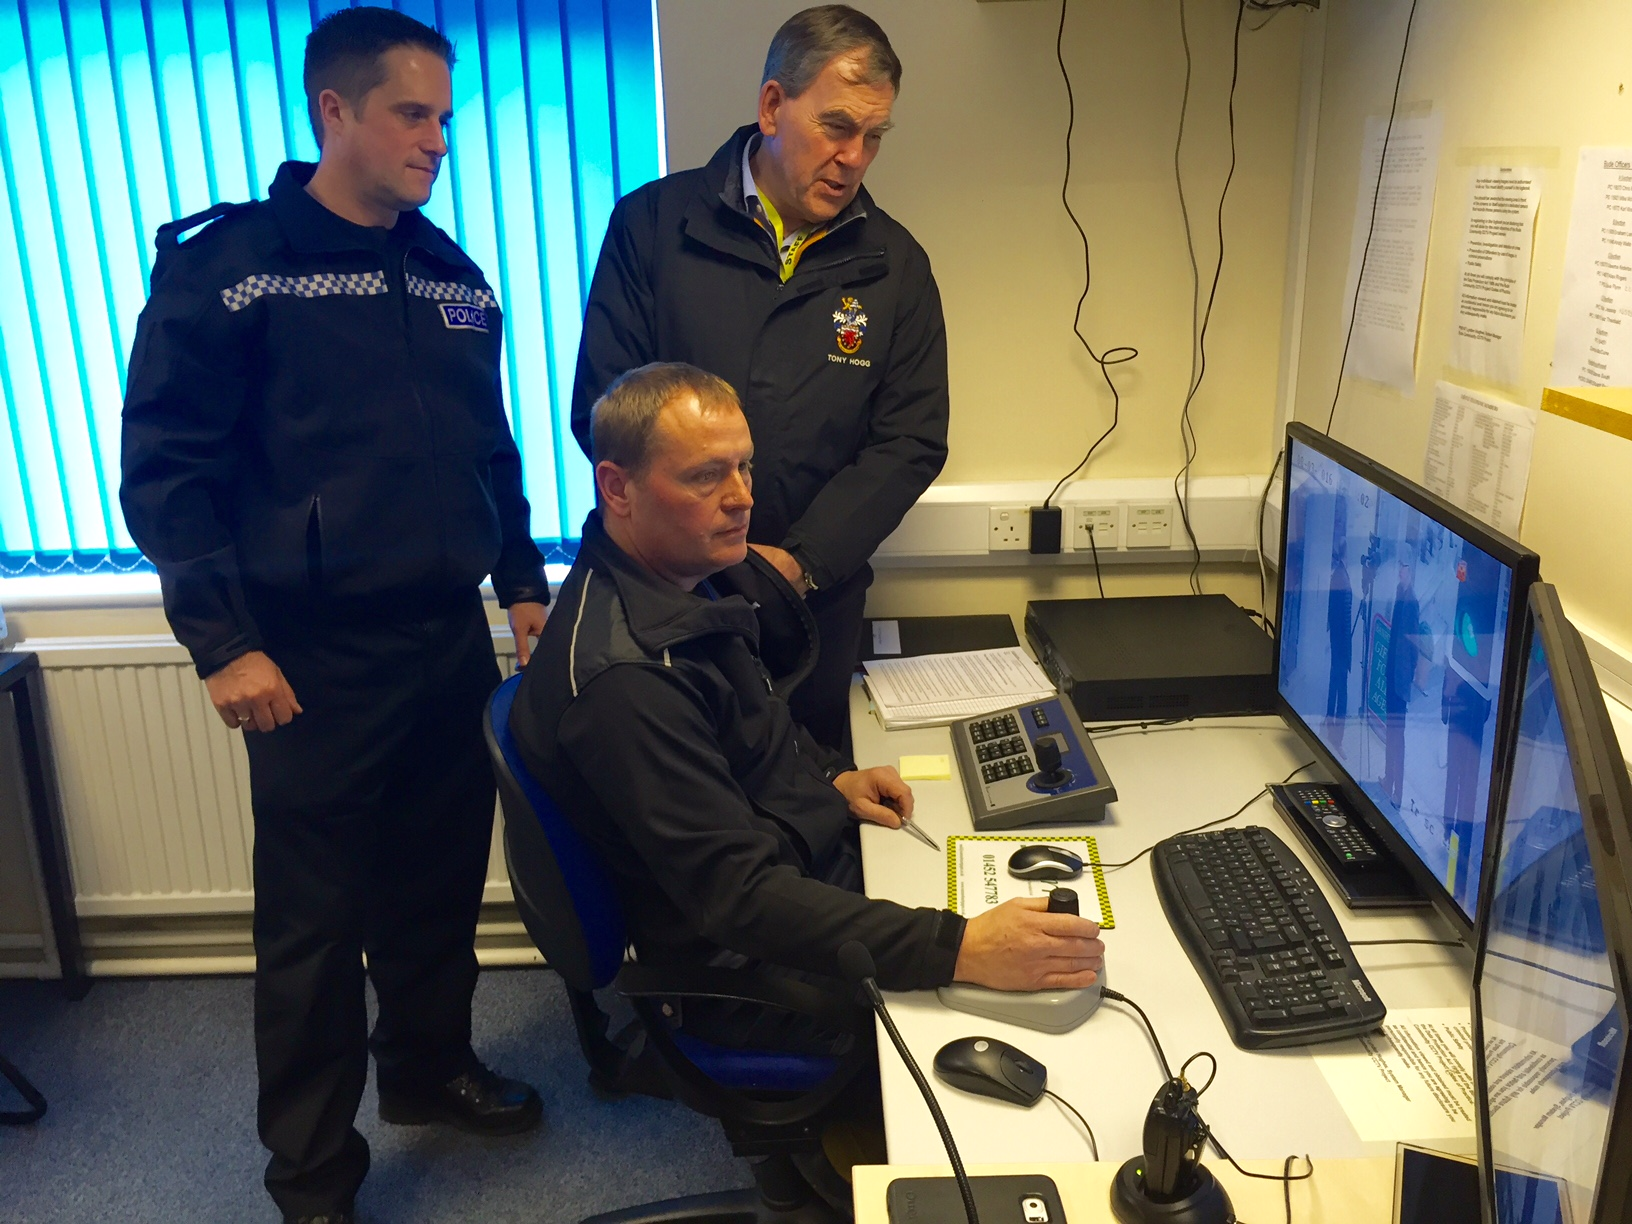 Nigel Marshall, CCTV System Provider, explaining to Tony Hogg how CCTV is used in Bude